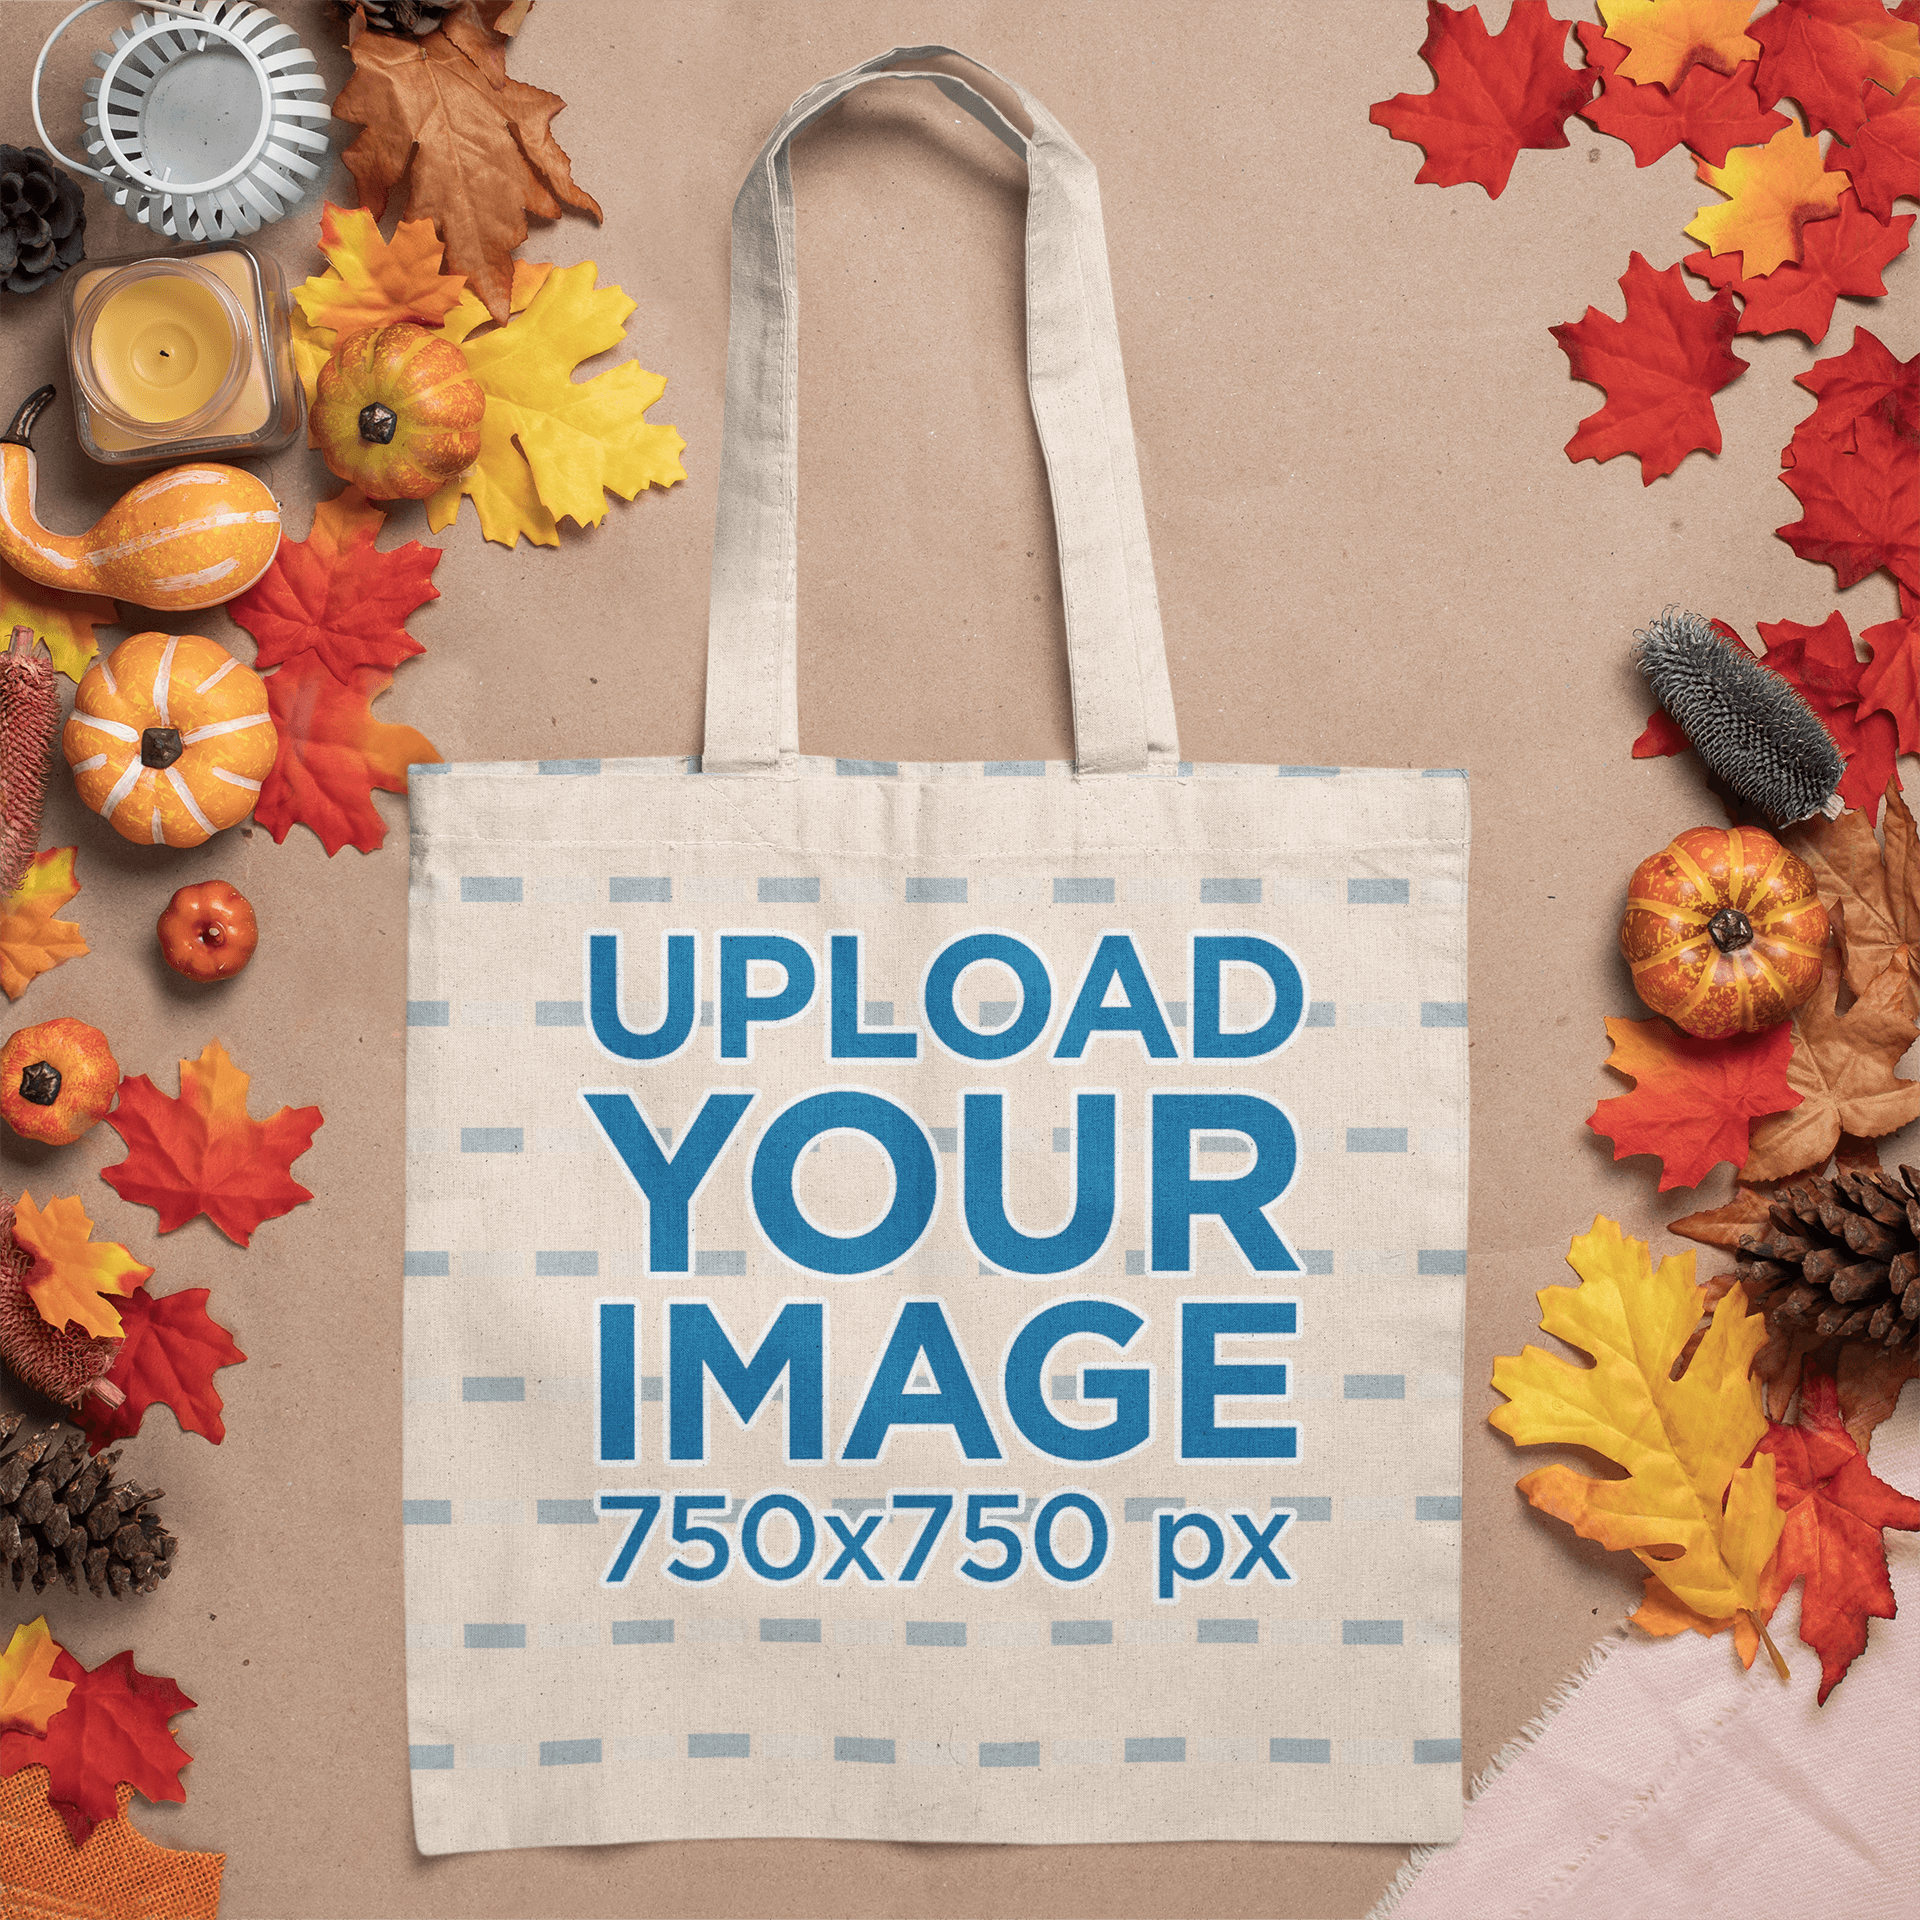 Mockup of a Tote Bag Lying Flat Among Autumn Decorations m50